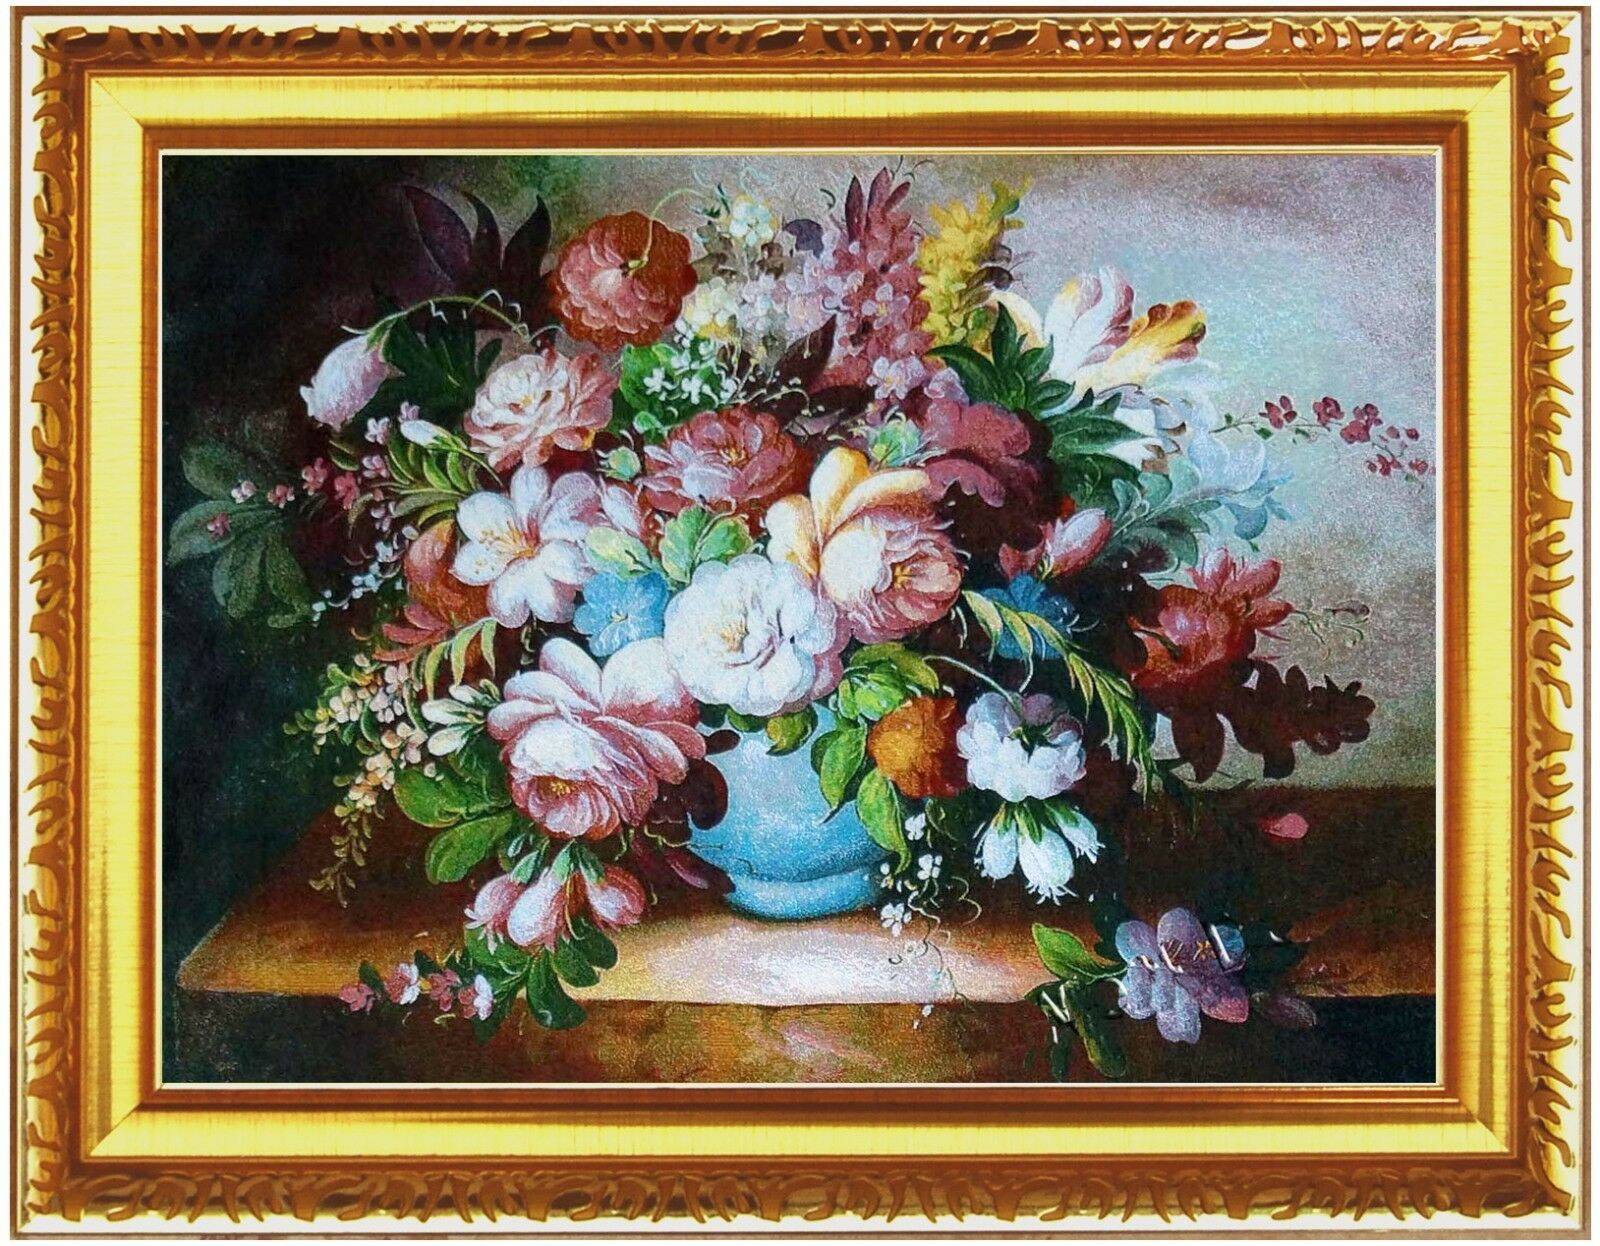 Jacquard Woven Wall Hanging Framed Tapestry Peonies Blau Pot Select 5 Styles